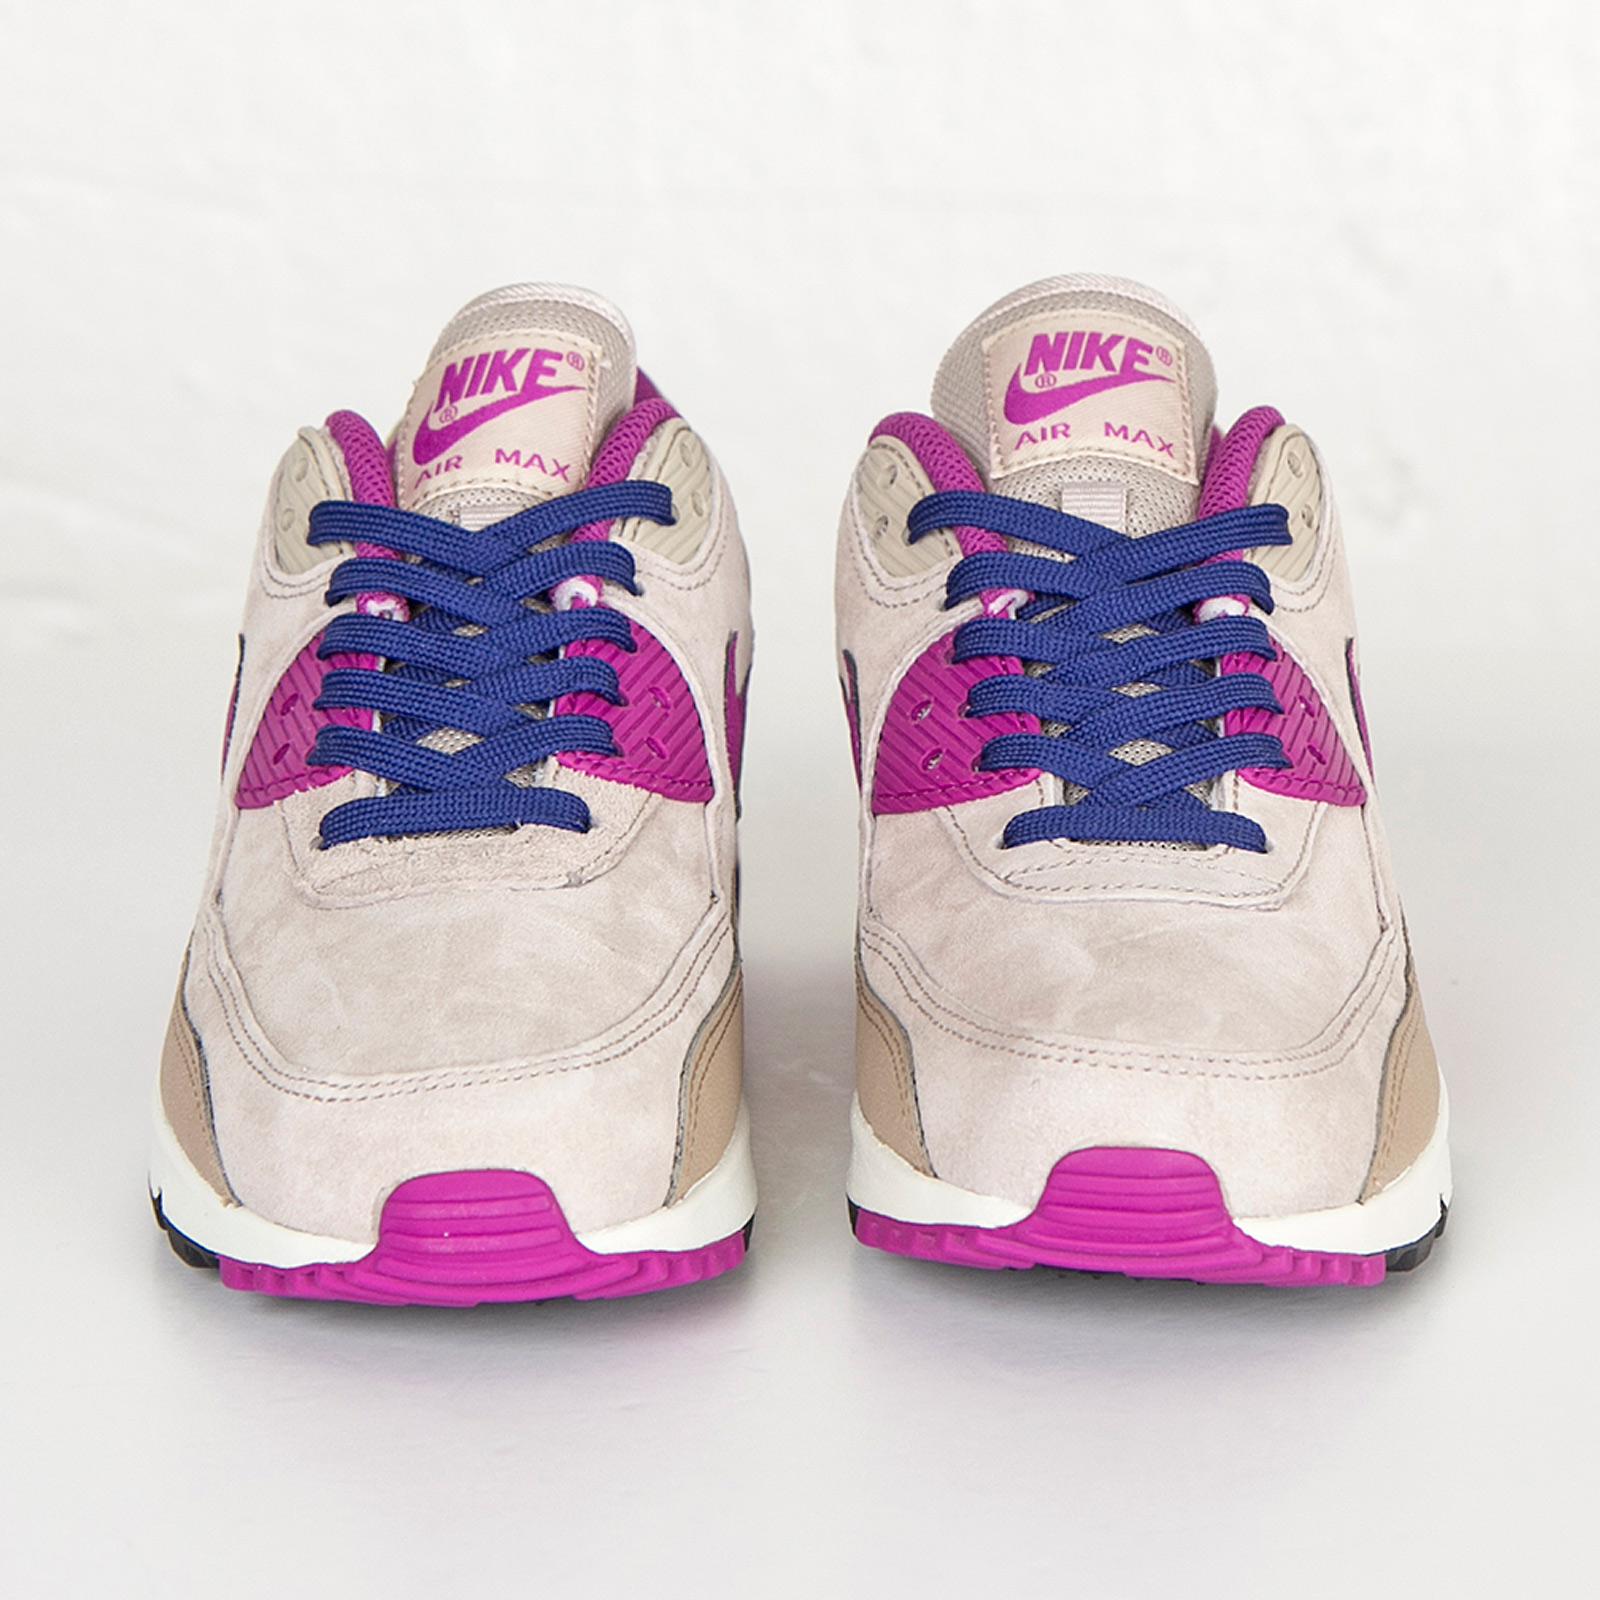 newest collection 082e5 b4fac Nike Women s Air Max 90 LTR Color  Desert Camo Purple Dusk-Deep Royal  Style  768887-200. Price   139.00